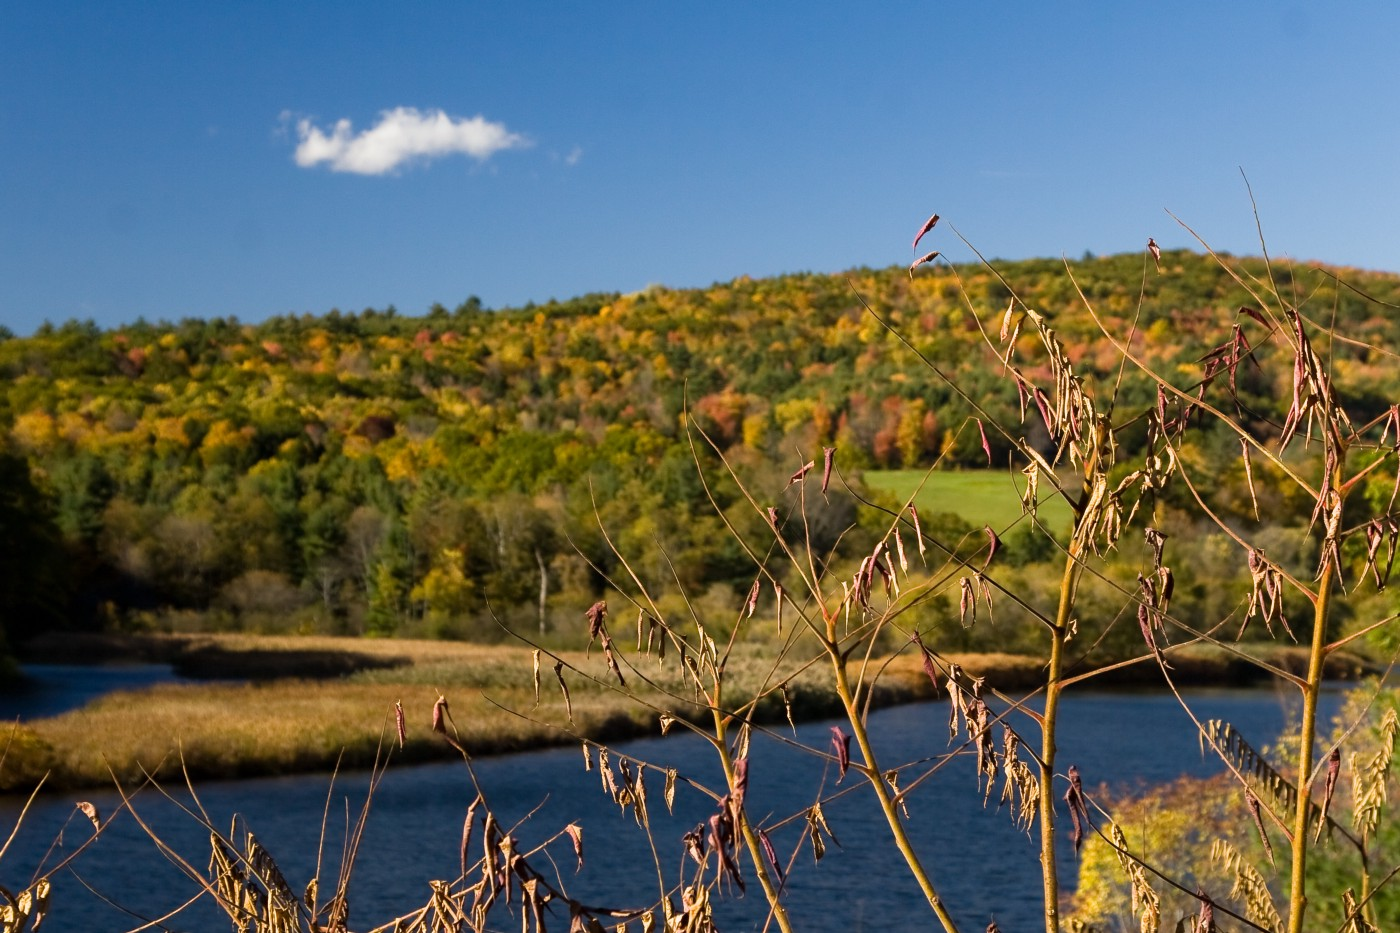 A Vermont landscape filled with trees and a lake.